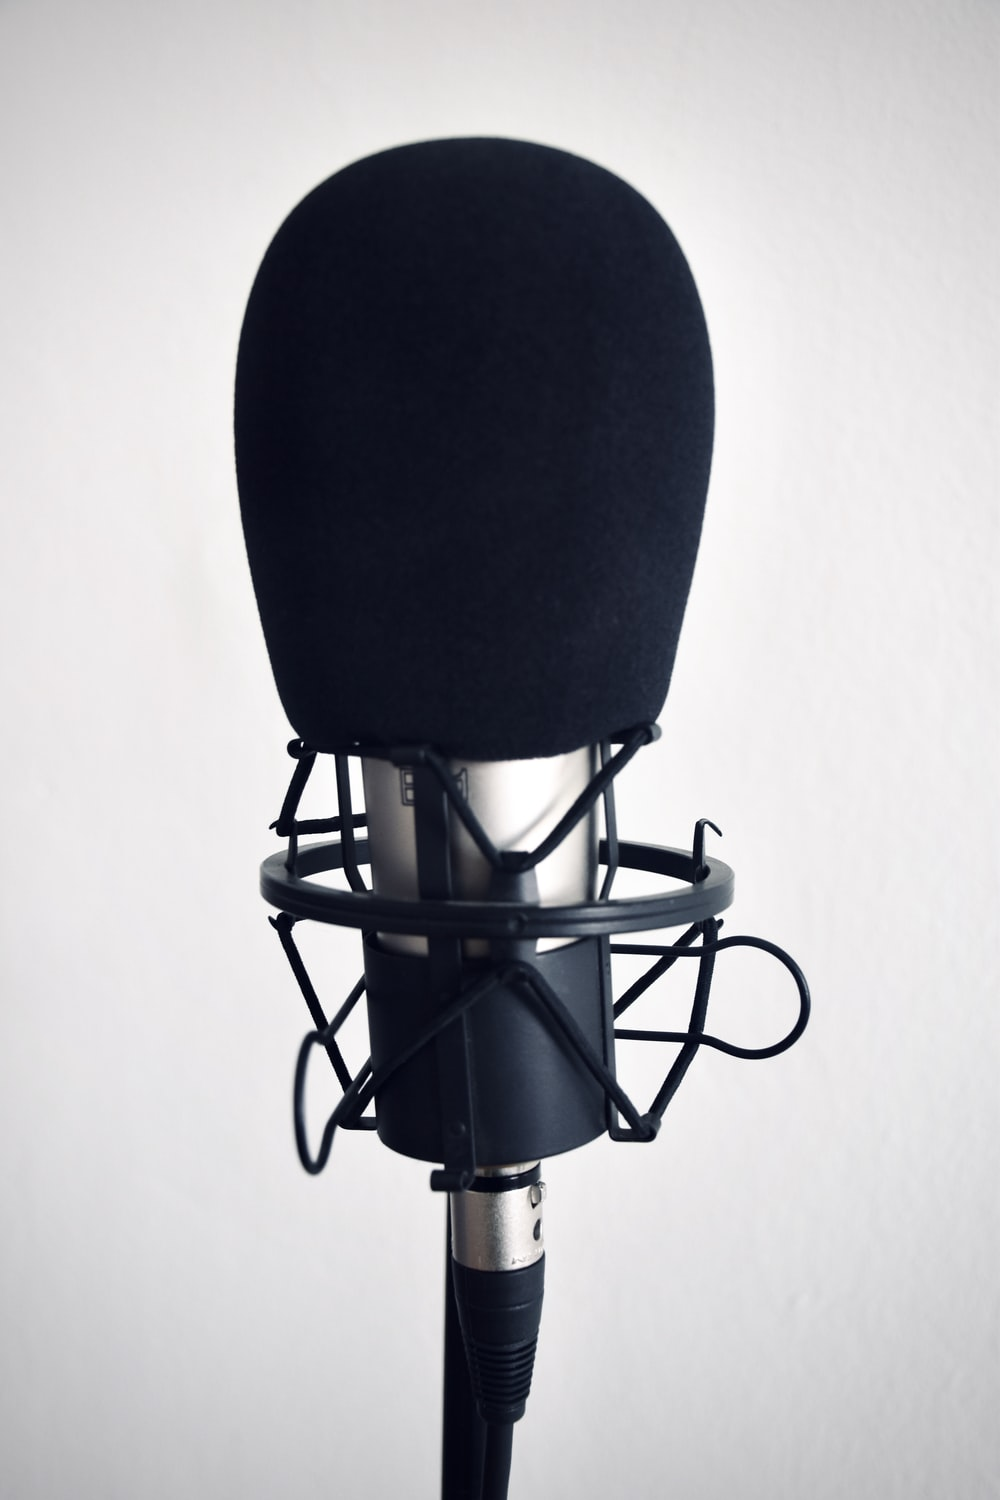 black and silver microphone on black stand